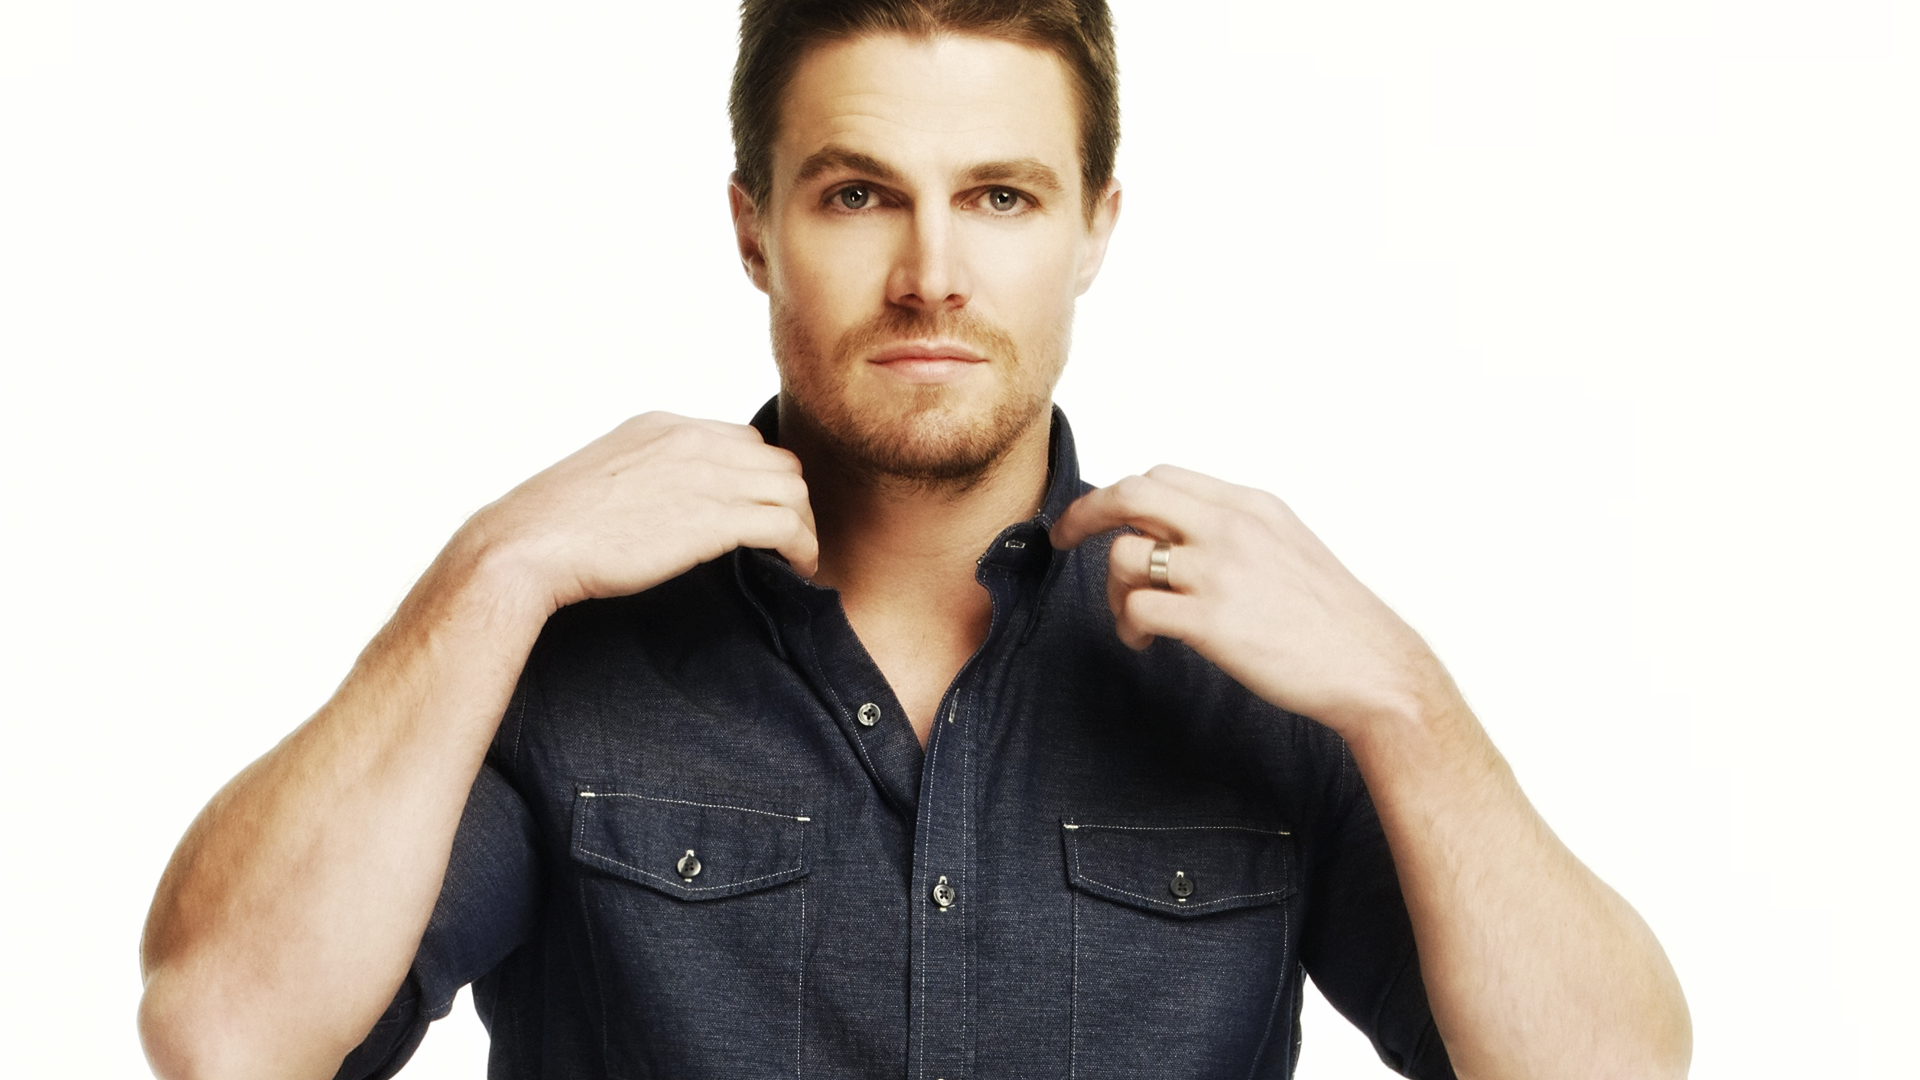 Stephen-Amell-stephen-amell-36874982-1920-1080